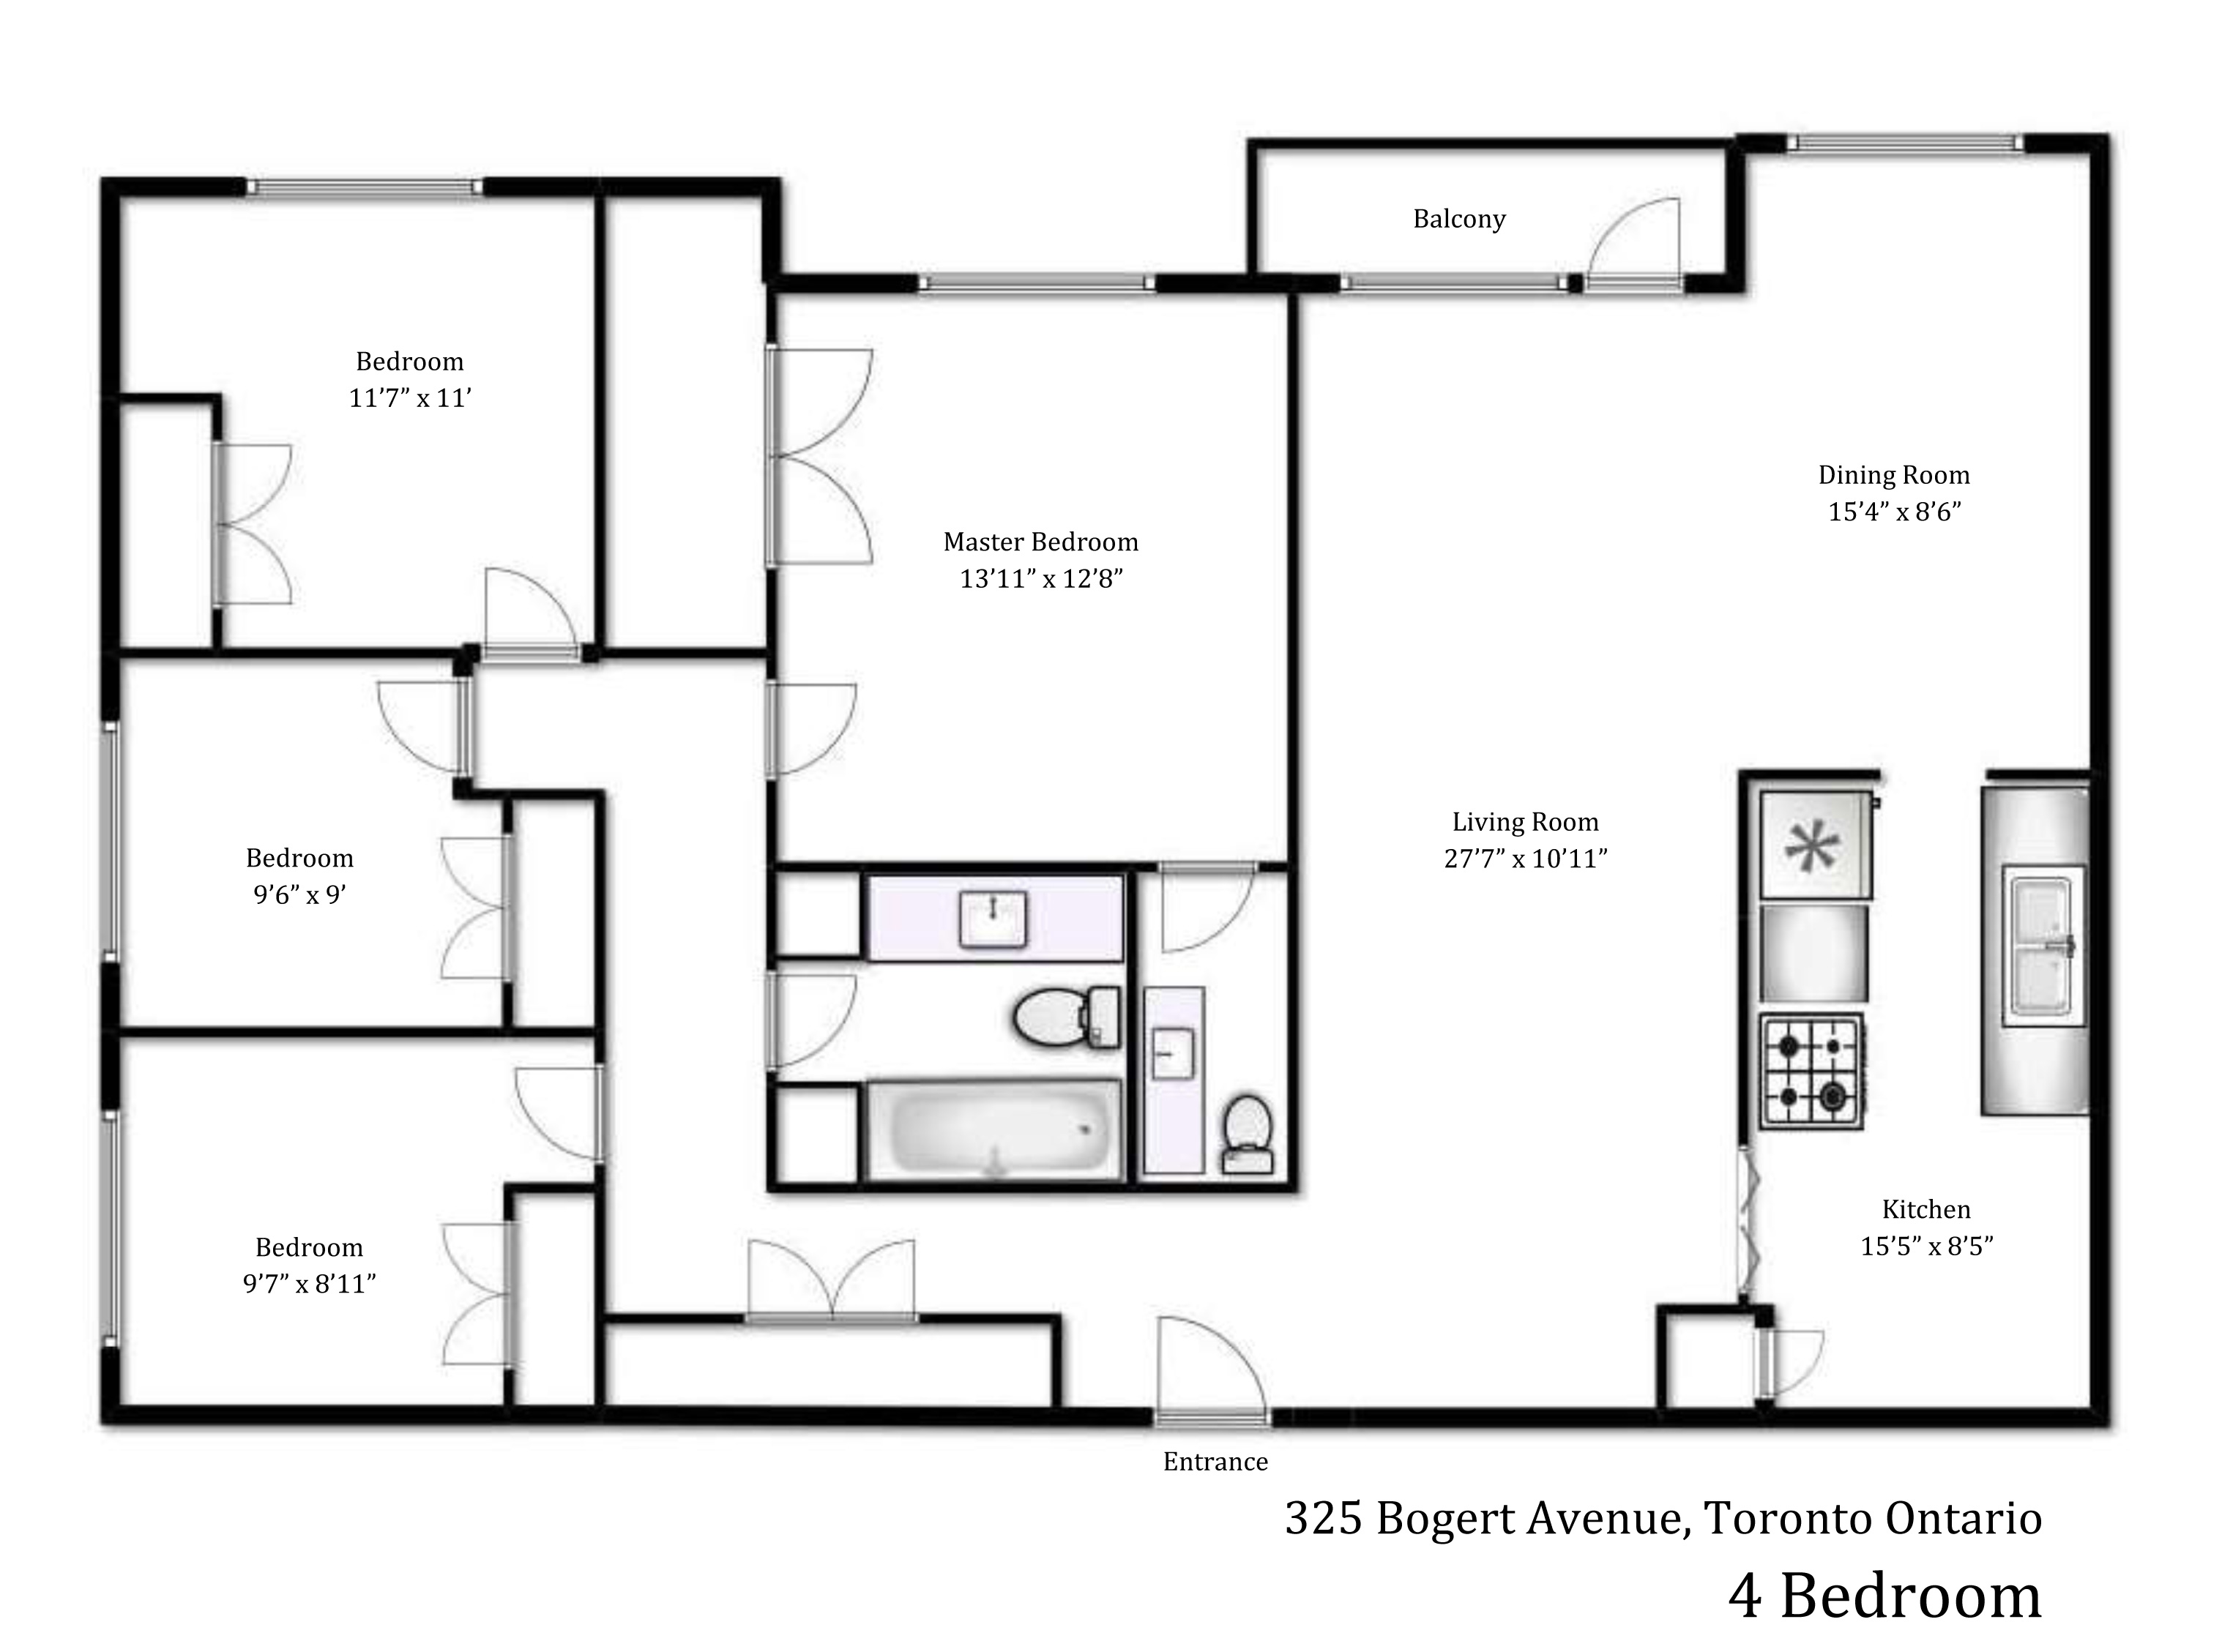 Gallery heath residence 325 bogert ave 4 room floor plan